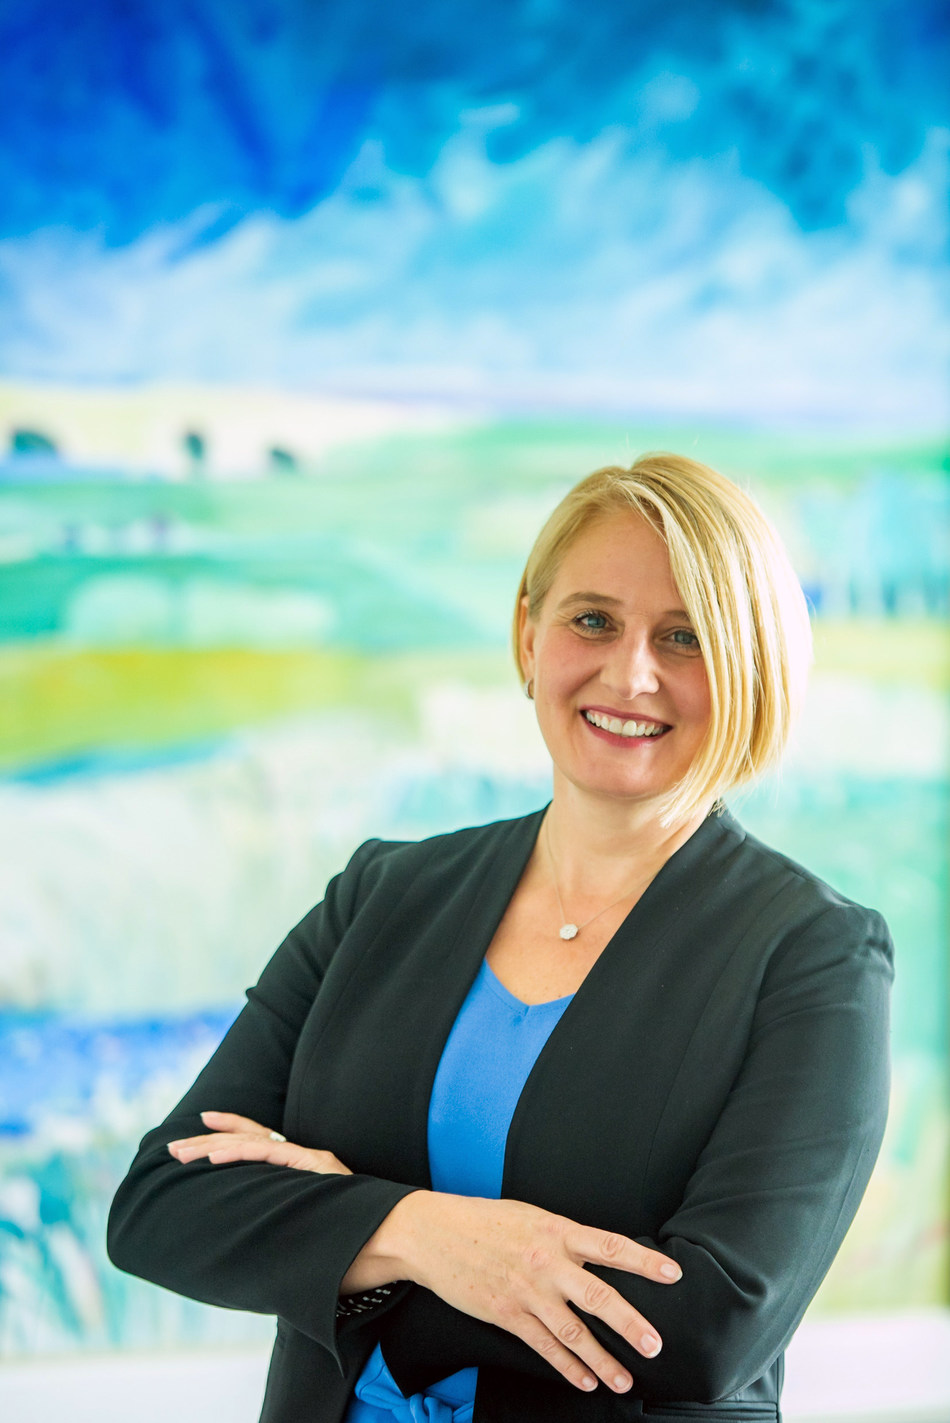 Marilyn Croghan, Asset Management, Capital Markets and Banking Executive Recruitment Specialist. Marilyn is a partner in Caldwell's Toronto office. (CNW Group/The Caldwell Partners International Inc.)